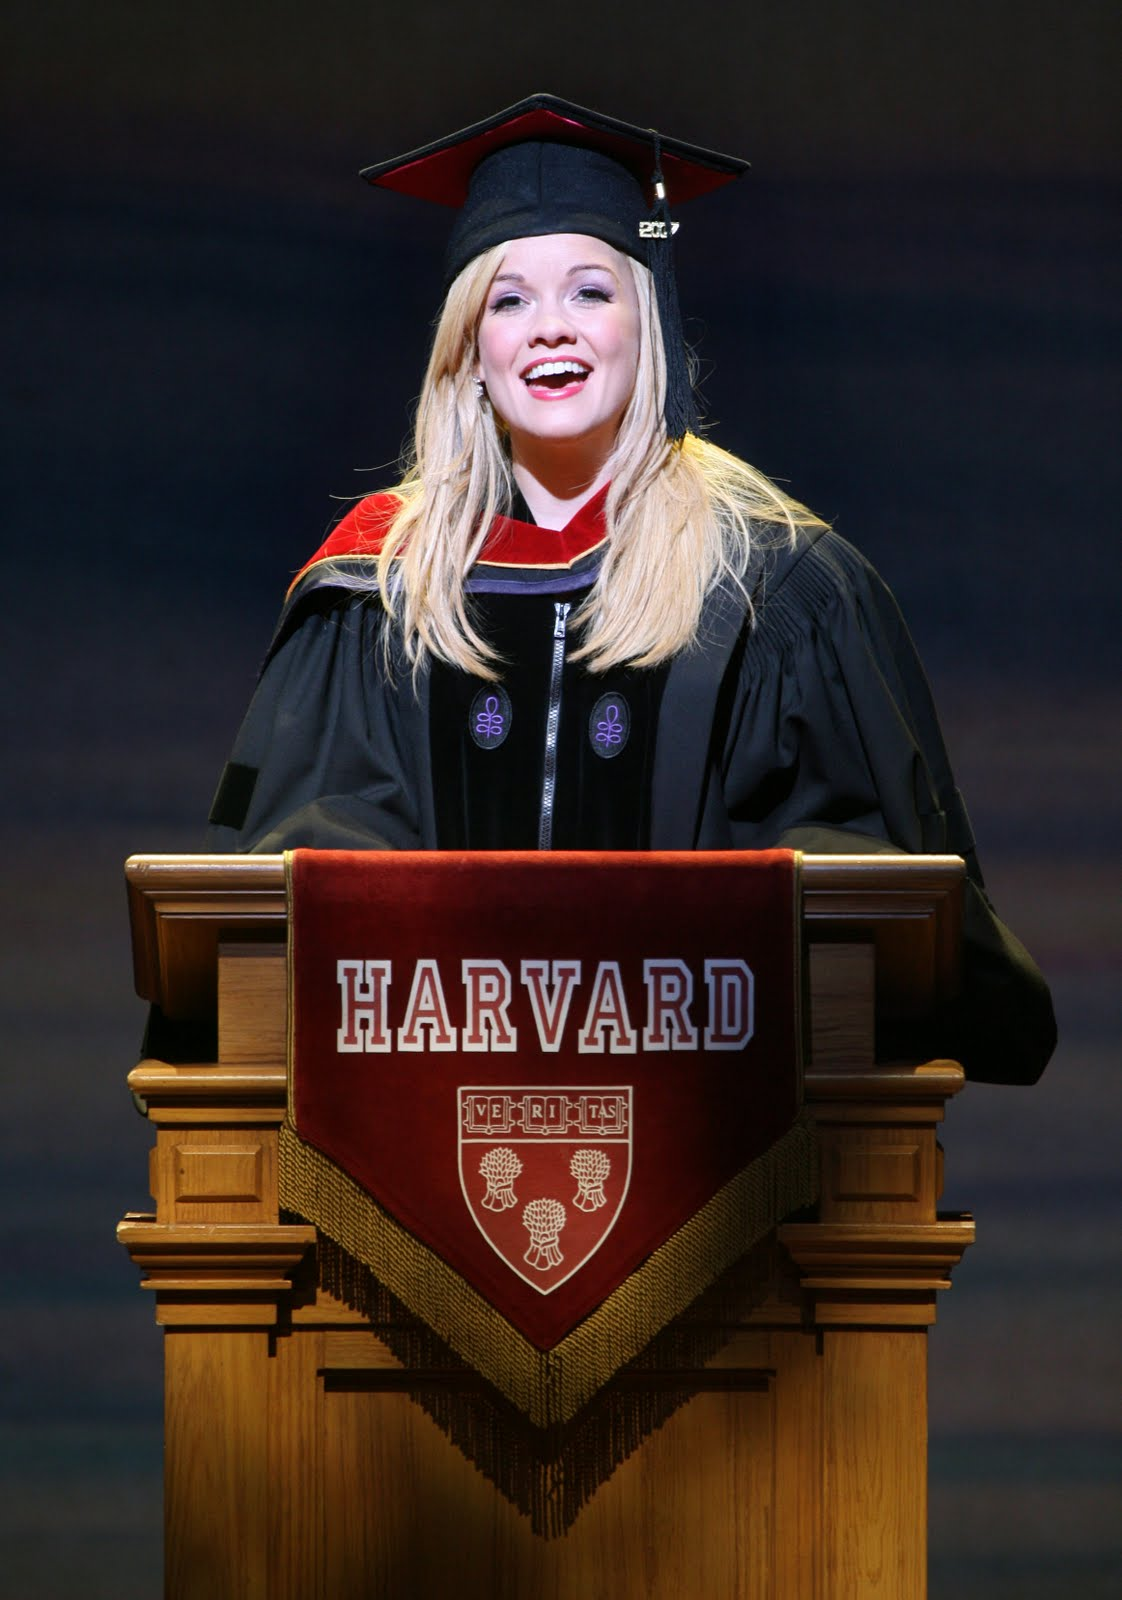 legally blonde quotes harvard - photo #31